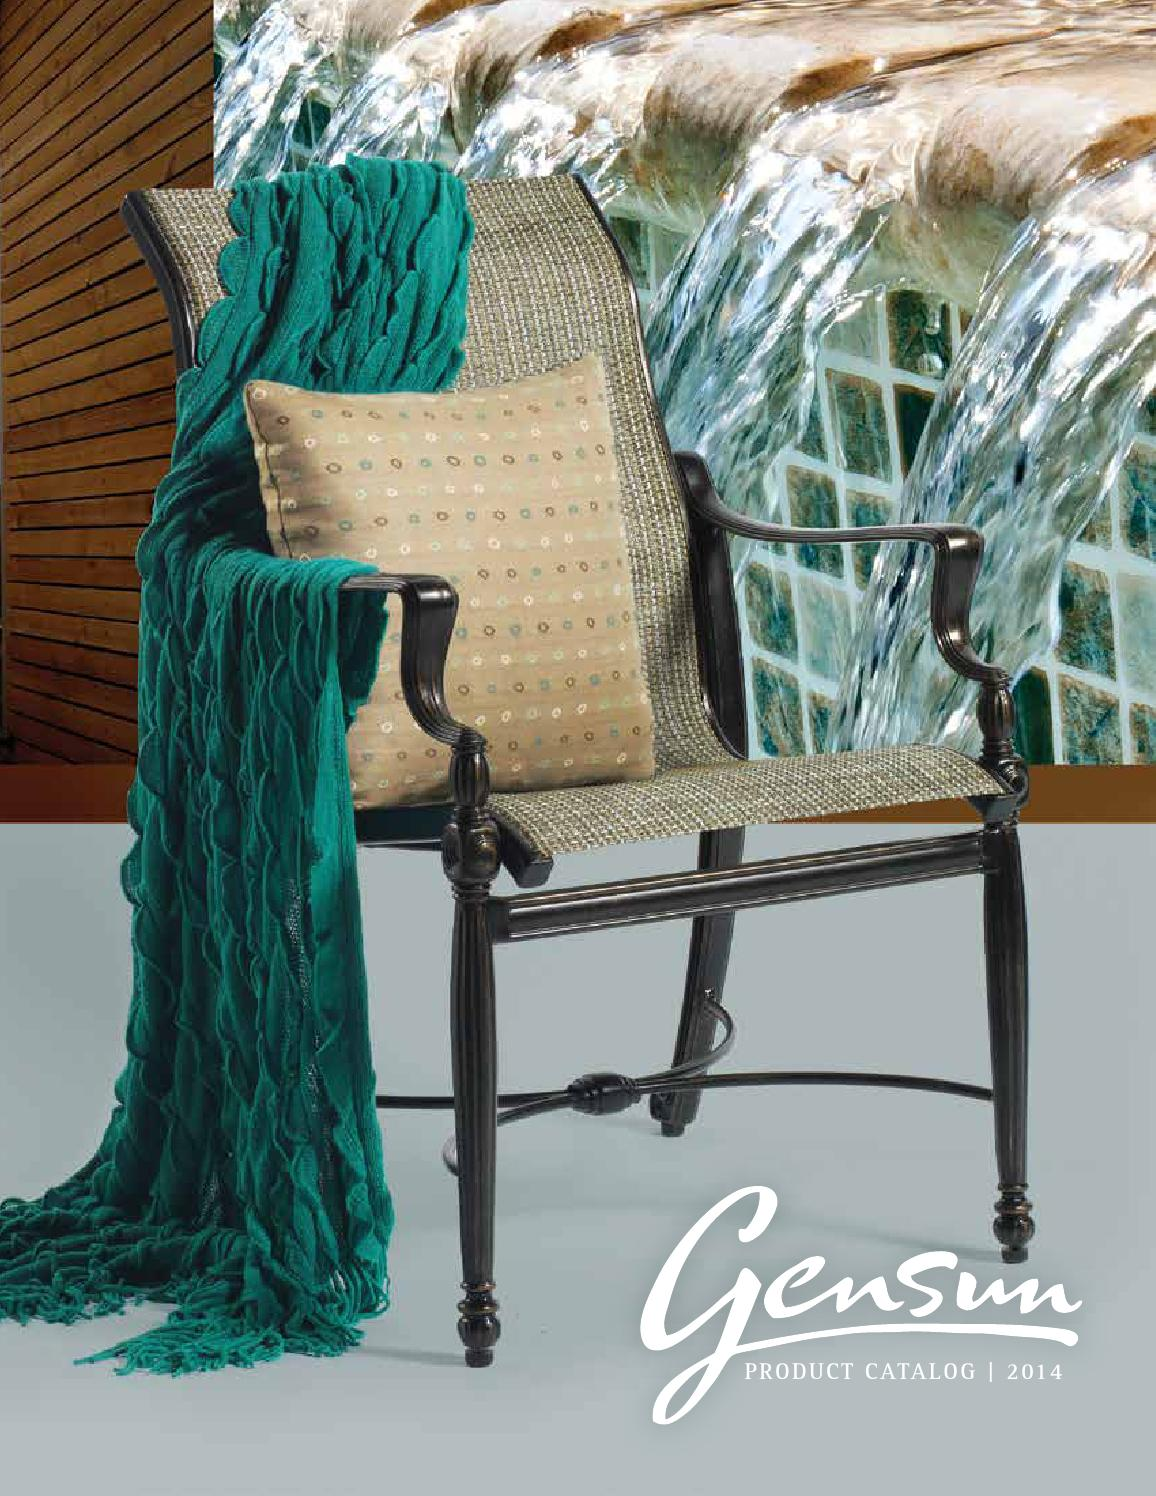 Gensun casual furniture catalog 2014 by Marx Fireplaces ...